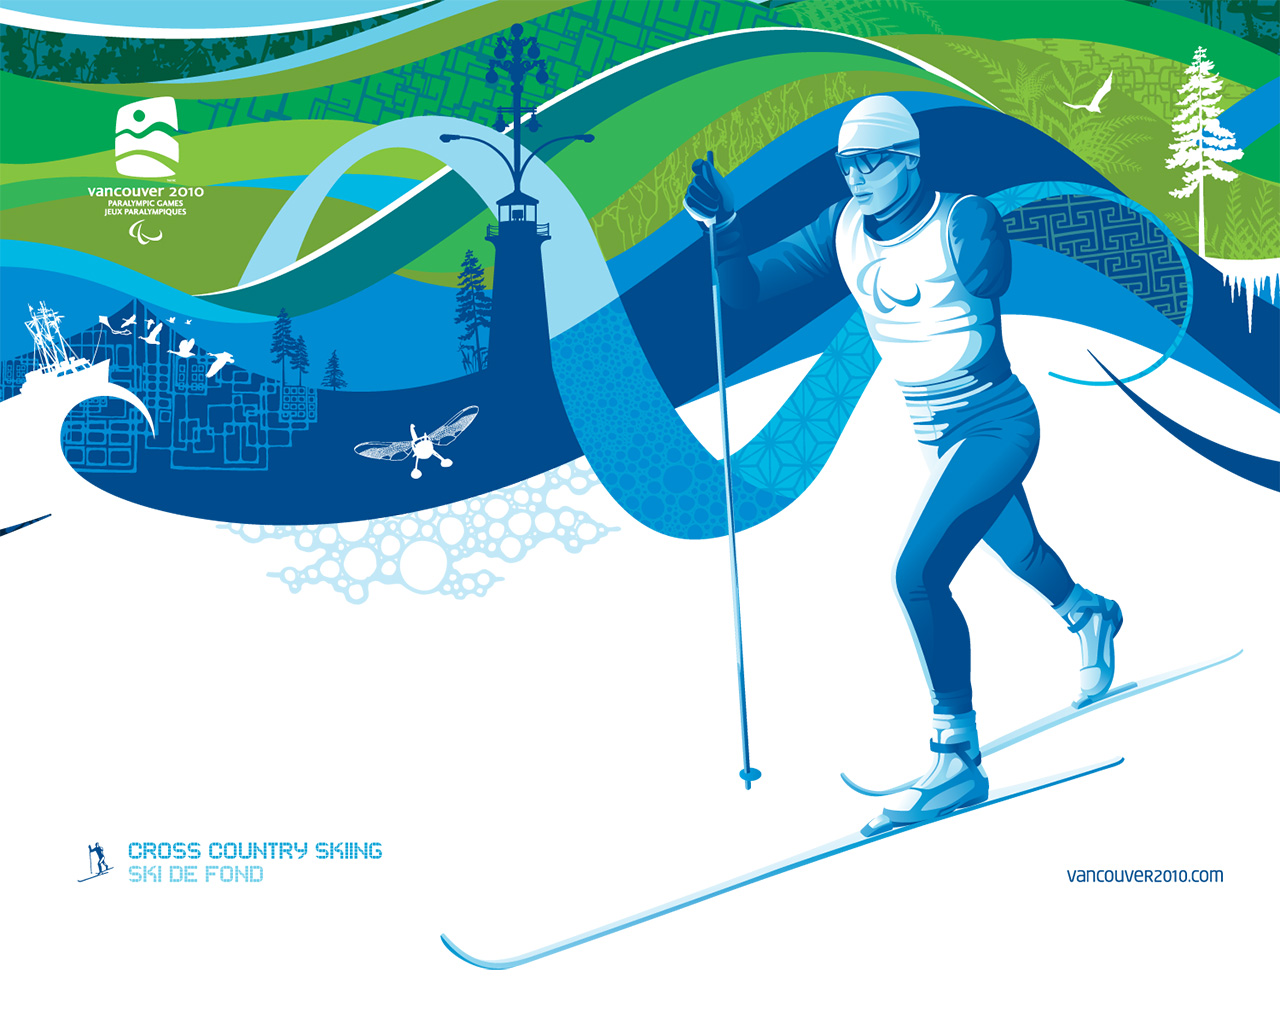 free vancouver 2010 olympic winter games powerpoint background 28